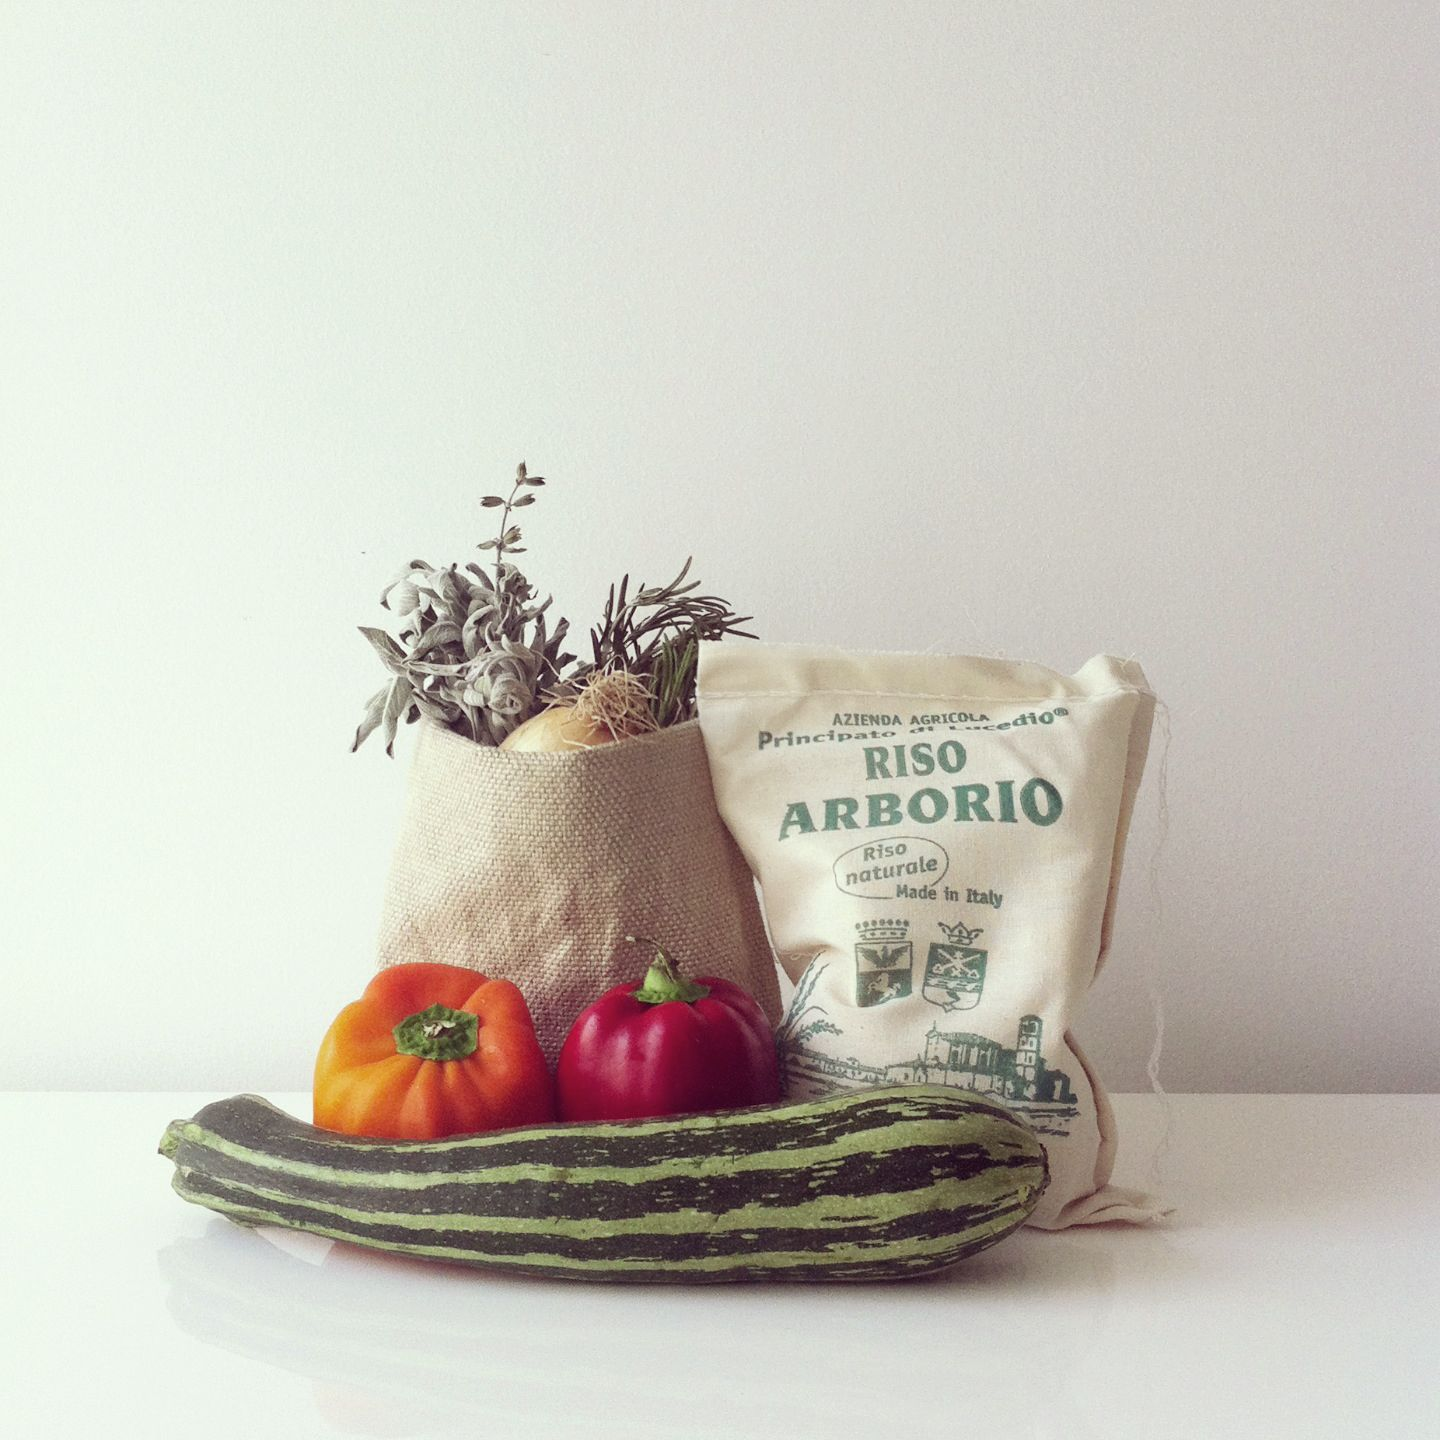 #risotto #vegetables #vegetable by Michal Rolland